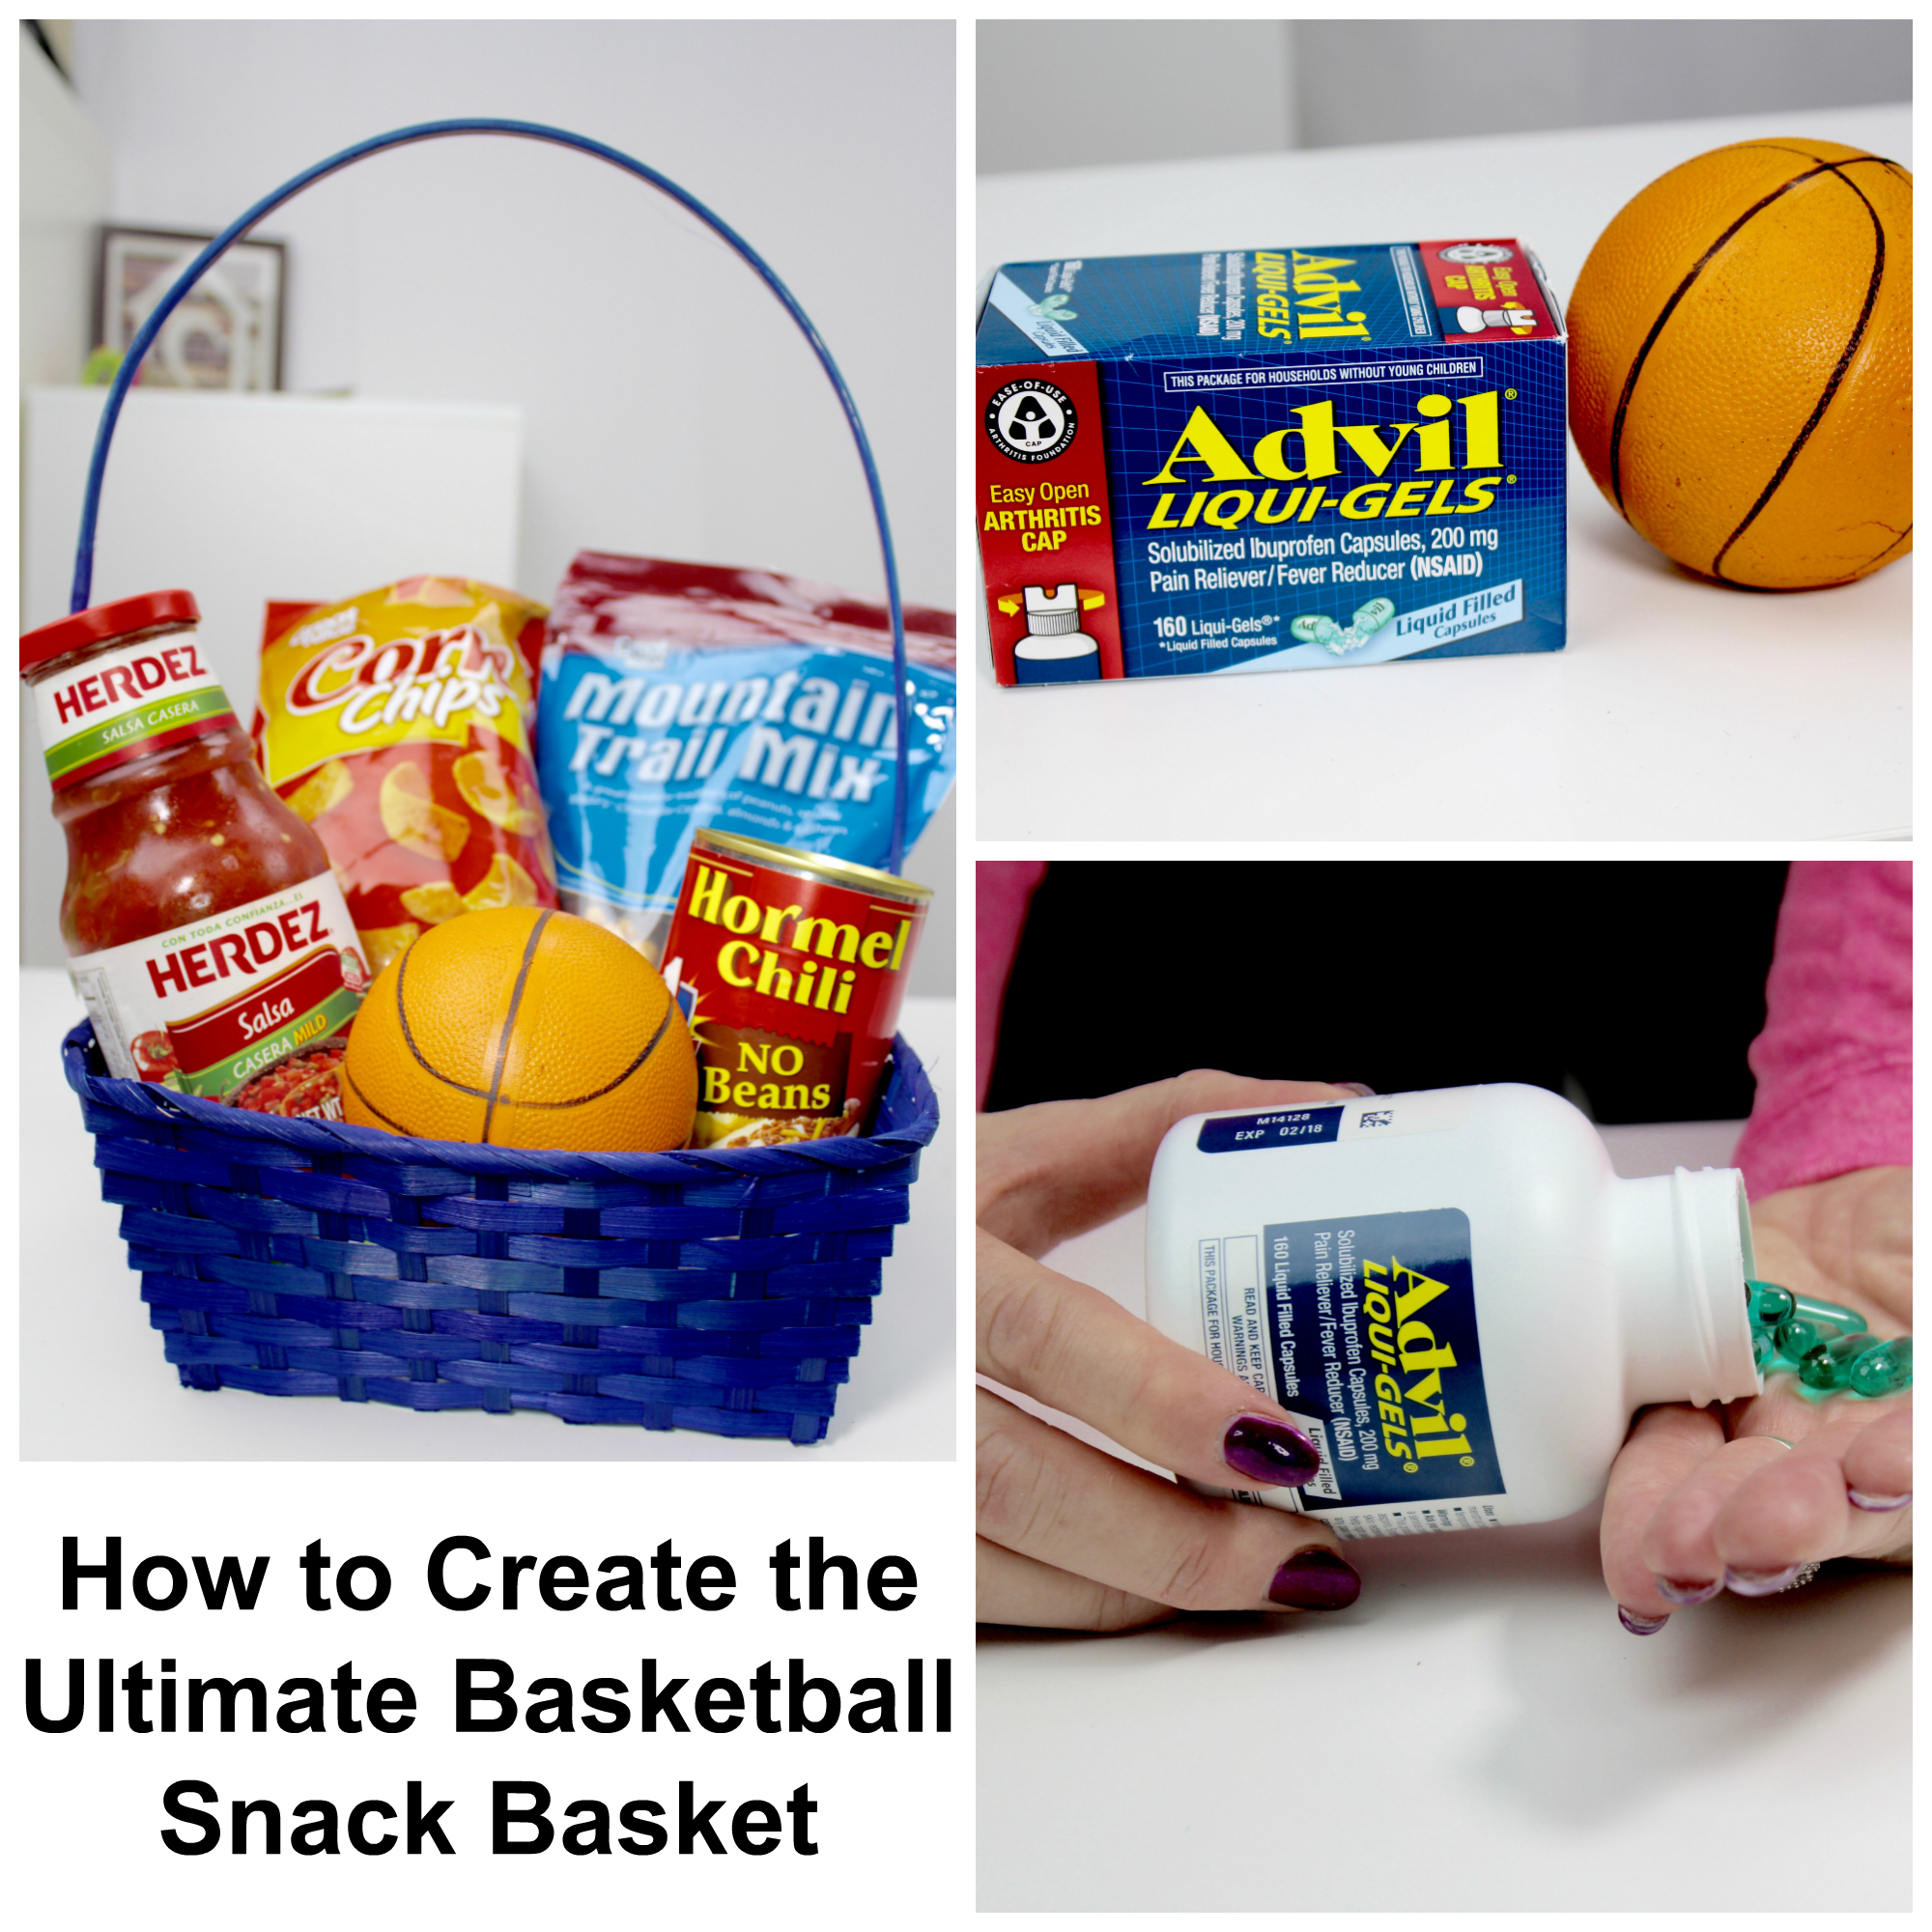 #GameForBasketball #DIY #CollectiveBias #ad